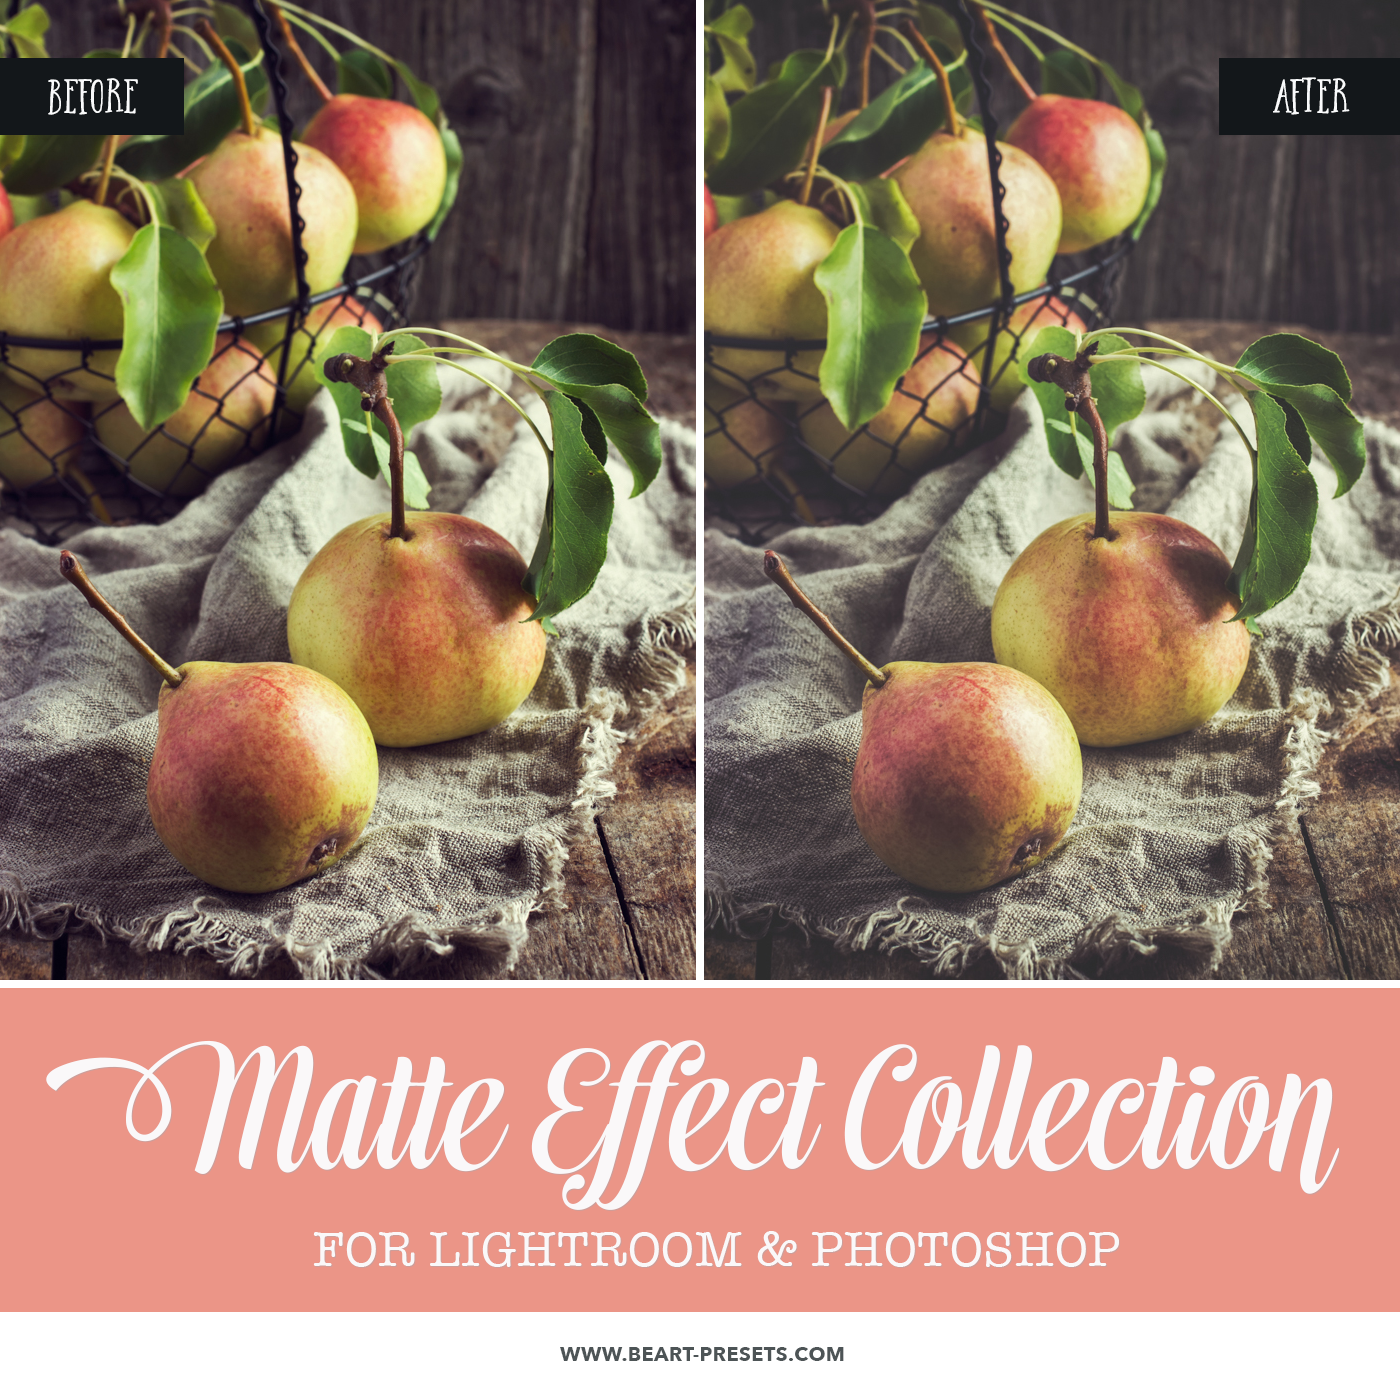 Matte effect for food photography